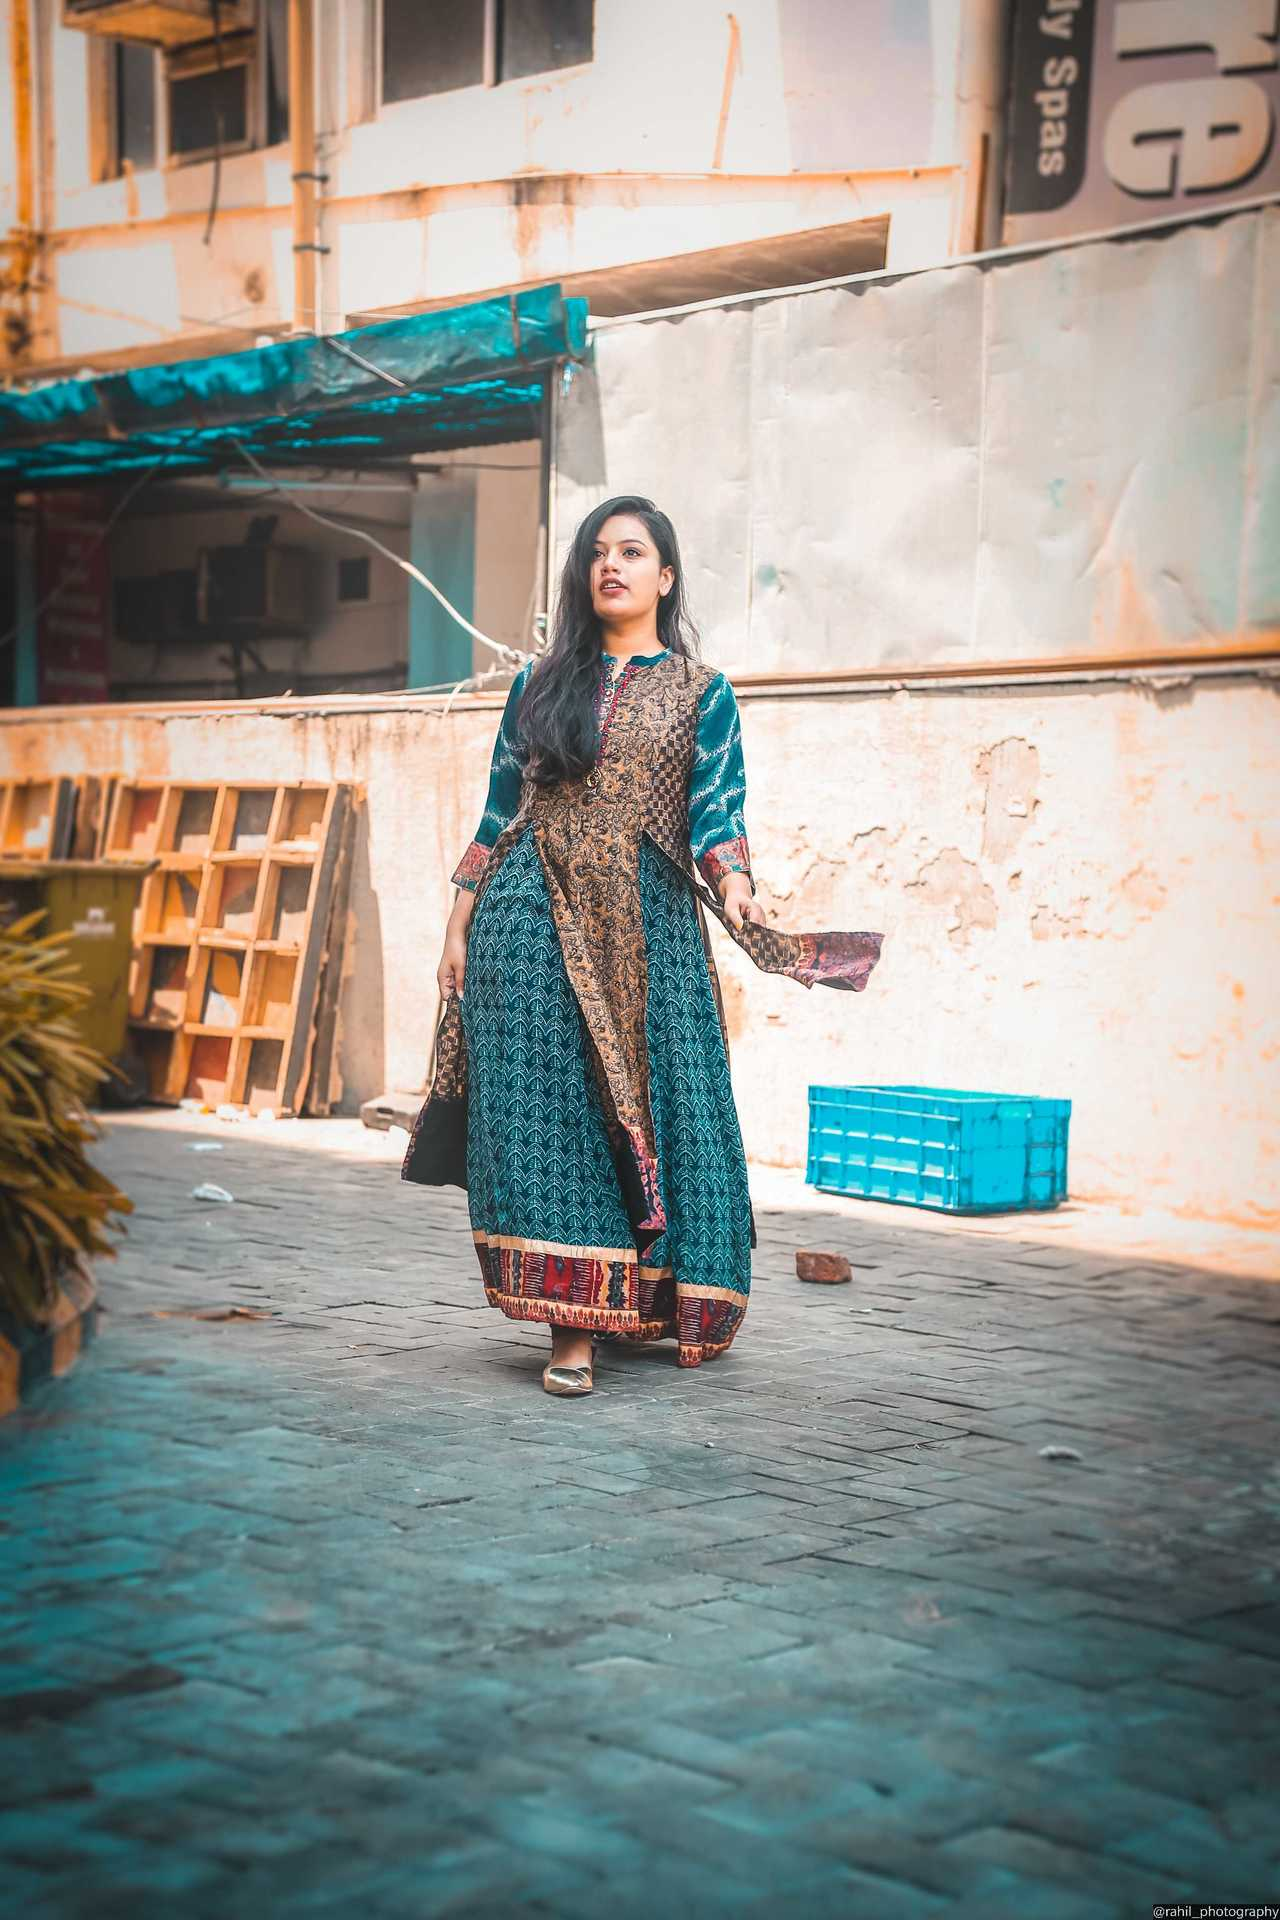 The Fashion Curve by Madhurima - PSX_20190601_142922